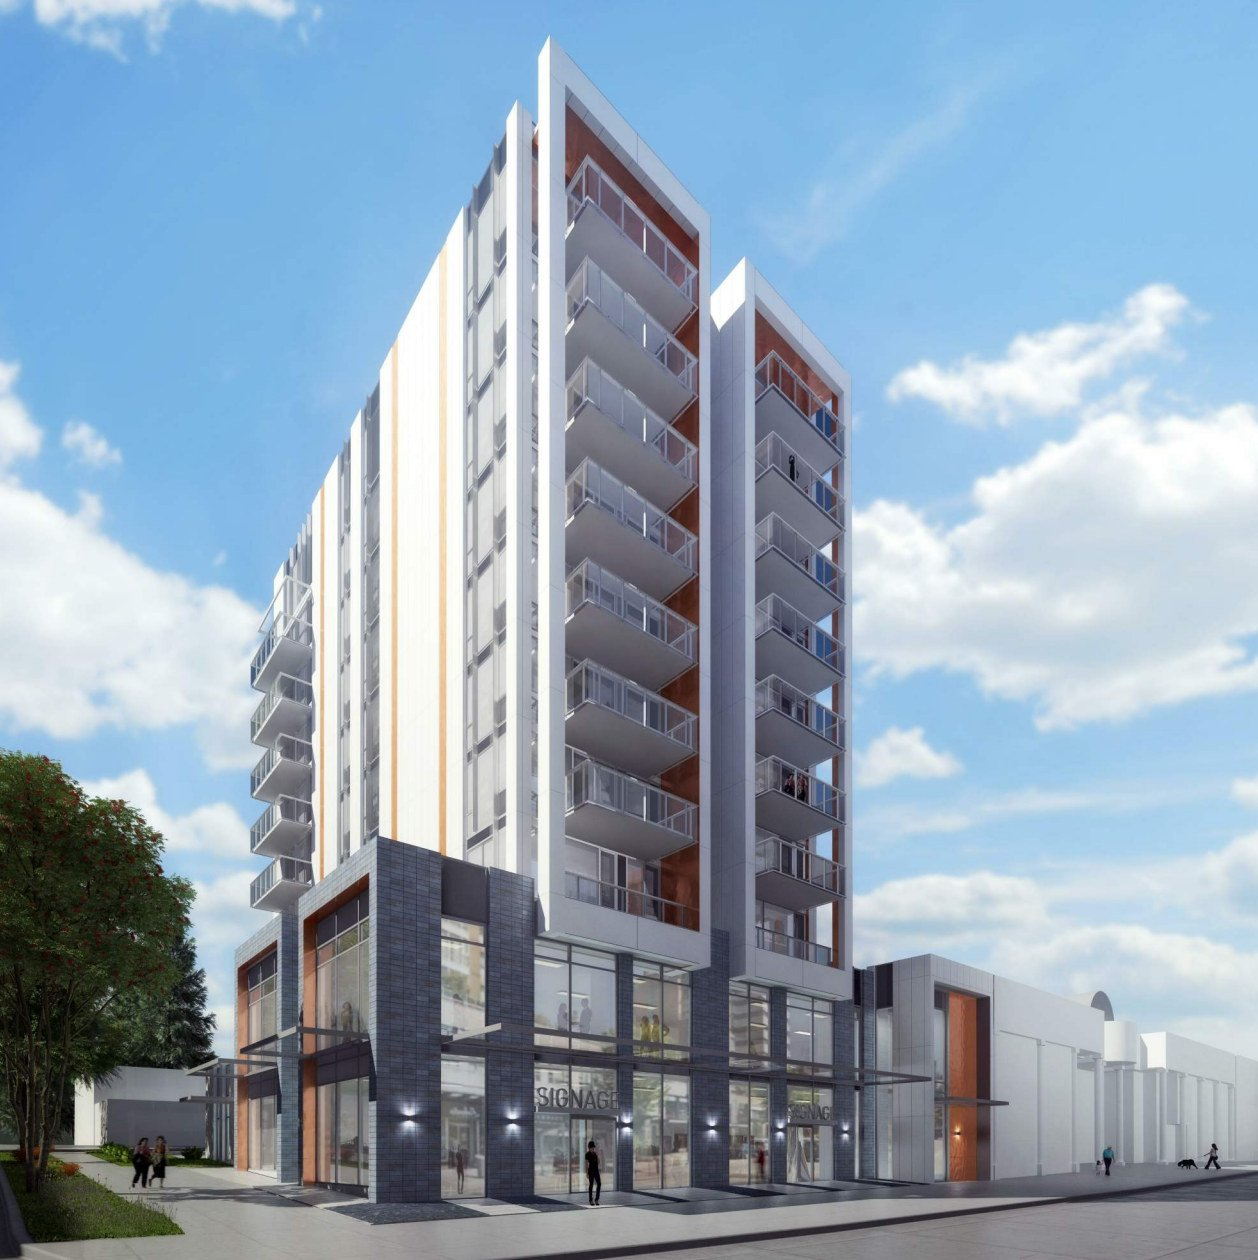 10-storey building proposed for West Broadway and Spruce